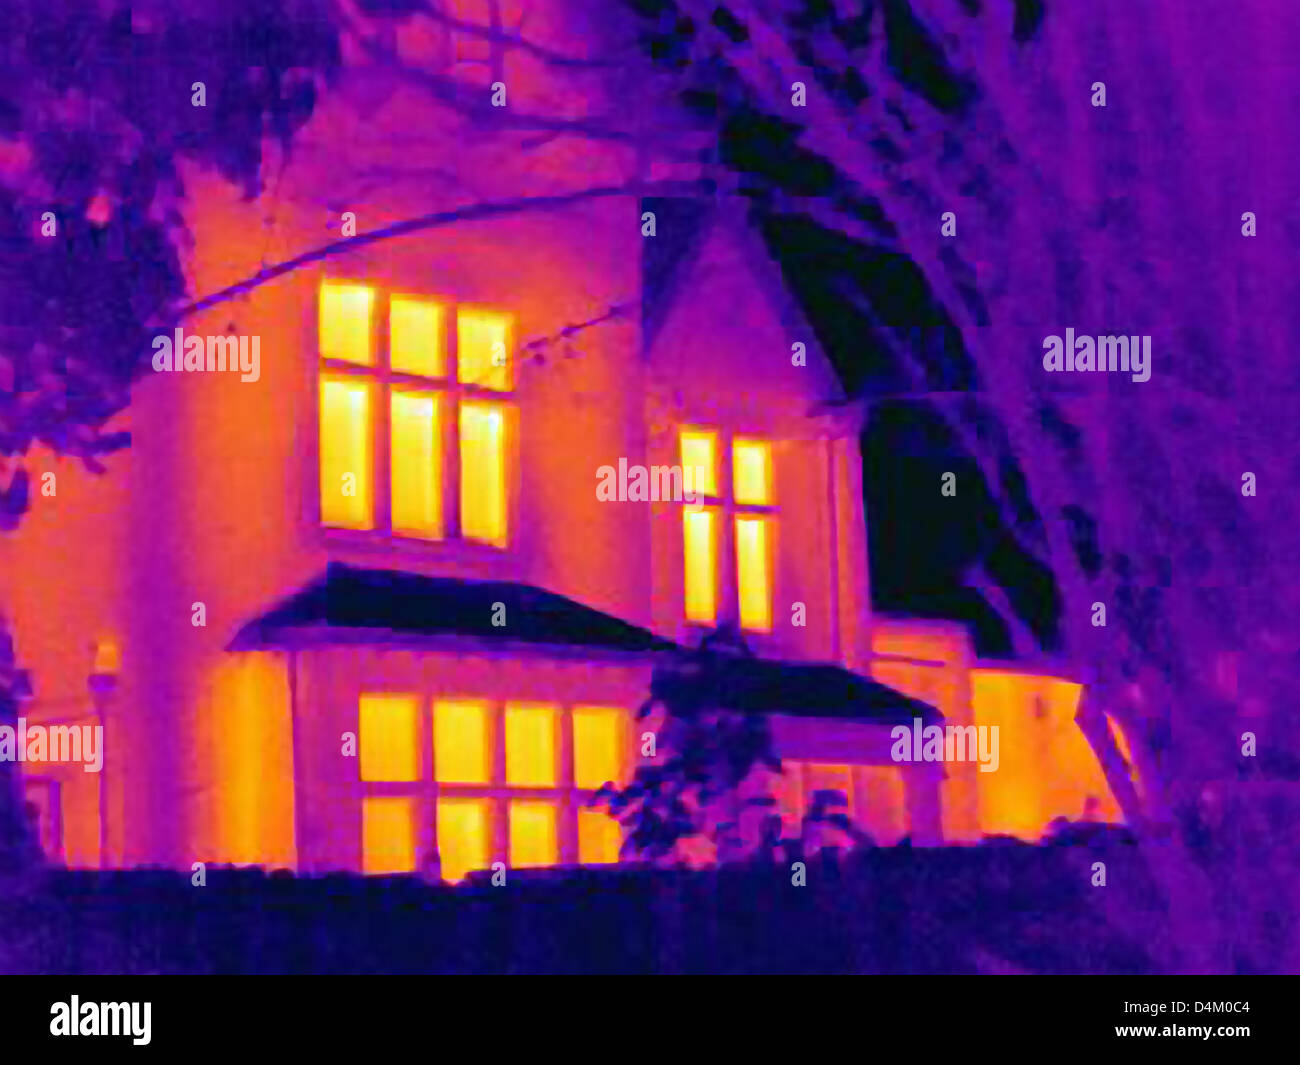 Thermal image of house - Stock Image